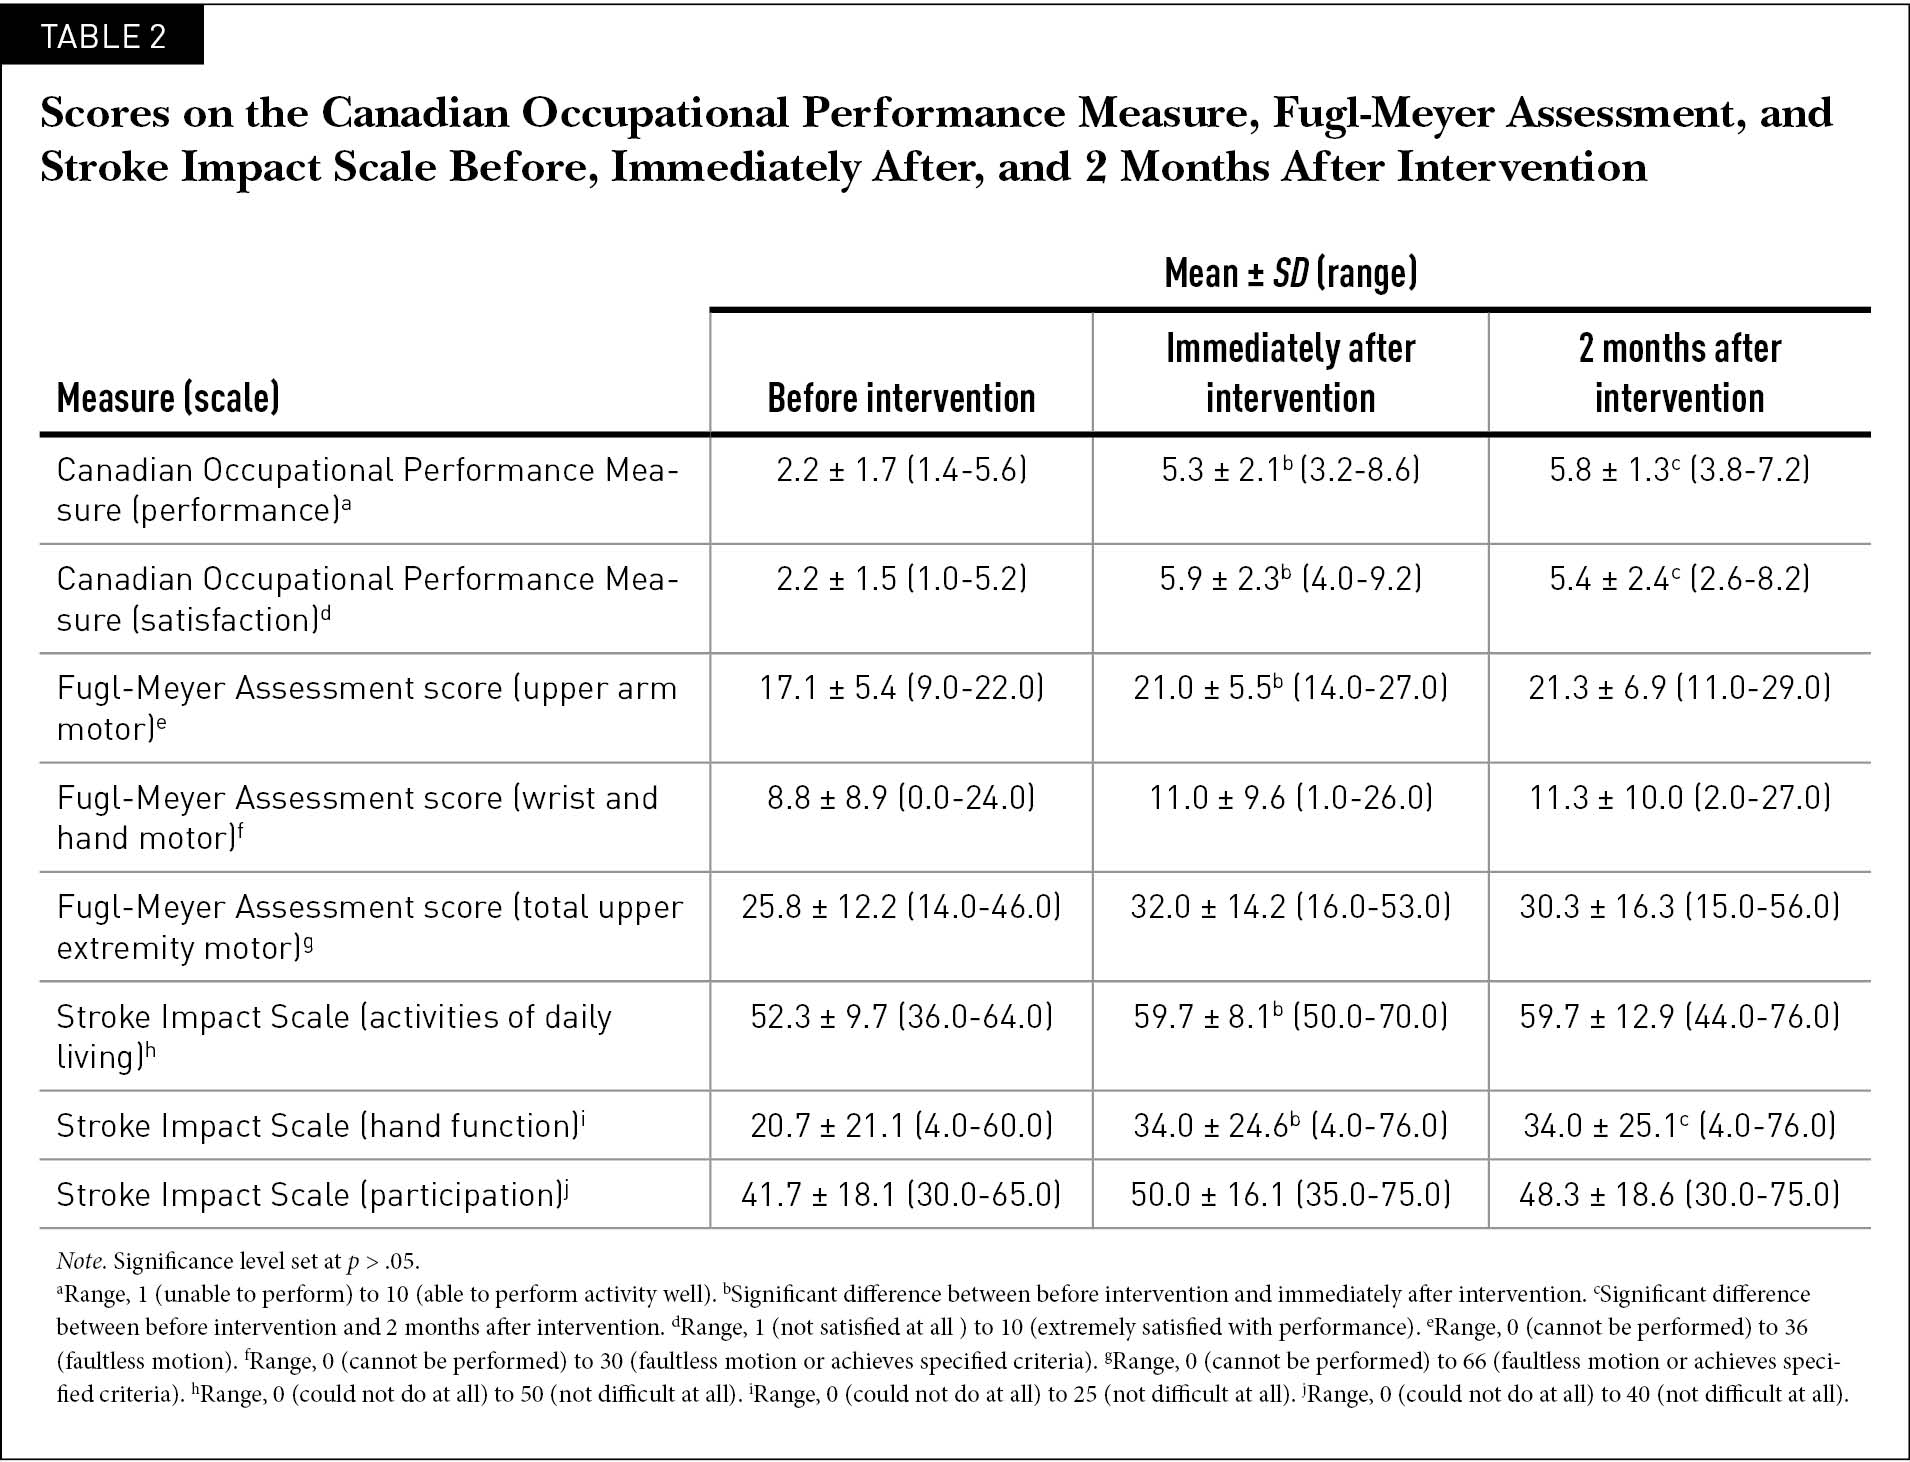 Scores on the Canadian Occupational Performance Measure, Fugl-Meyer Assessment, and Stroke Impact Scale Before, Immediately After, and 2 Months After Intervention